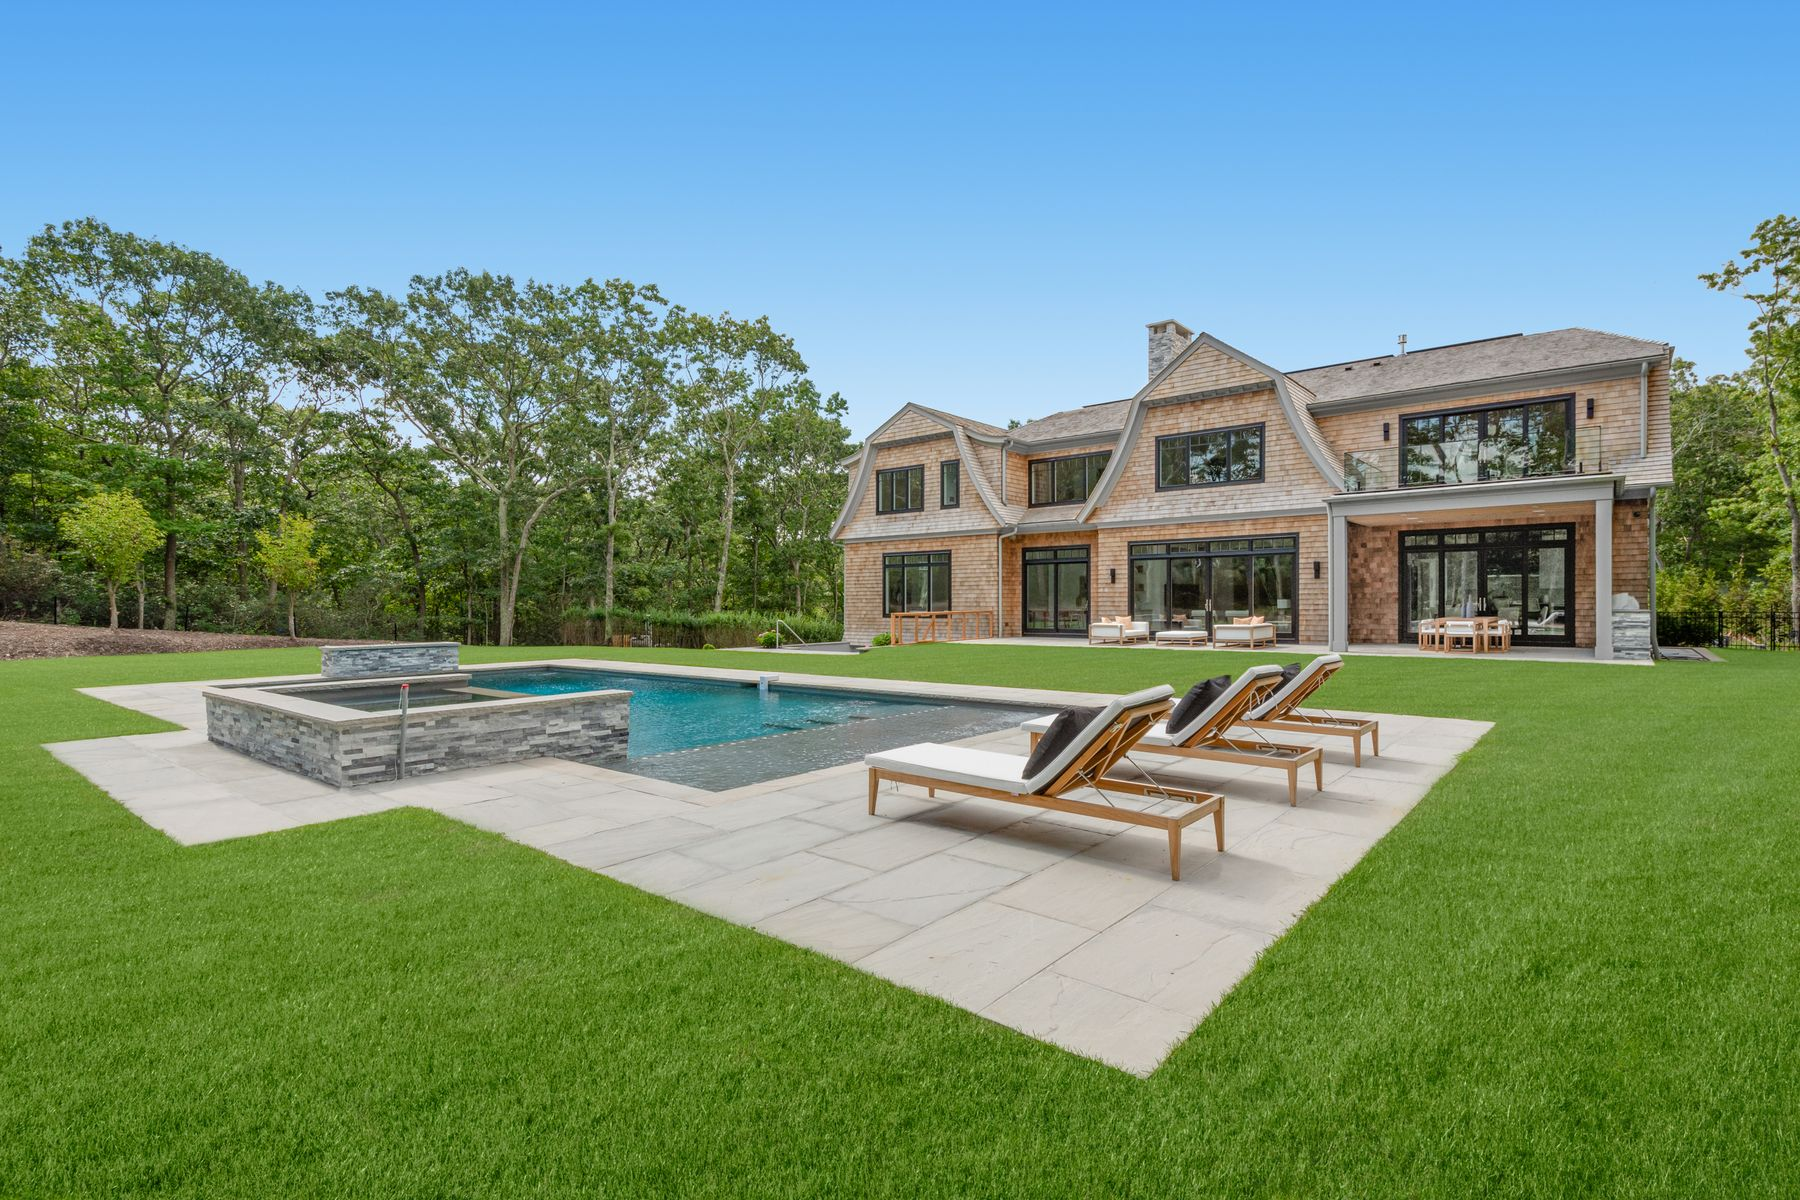 Single Family Home for sale in 18 Fairway Court, Sag Harbor, NY ,11963